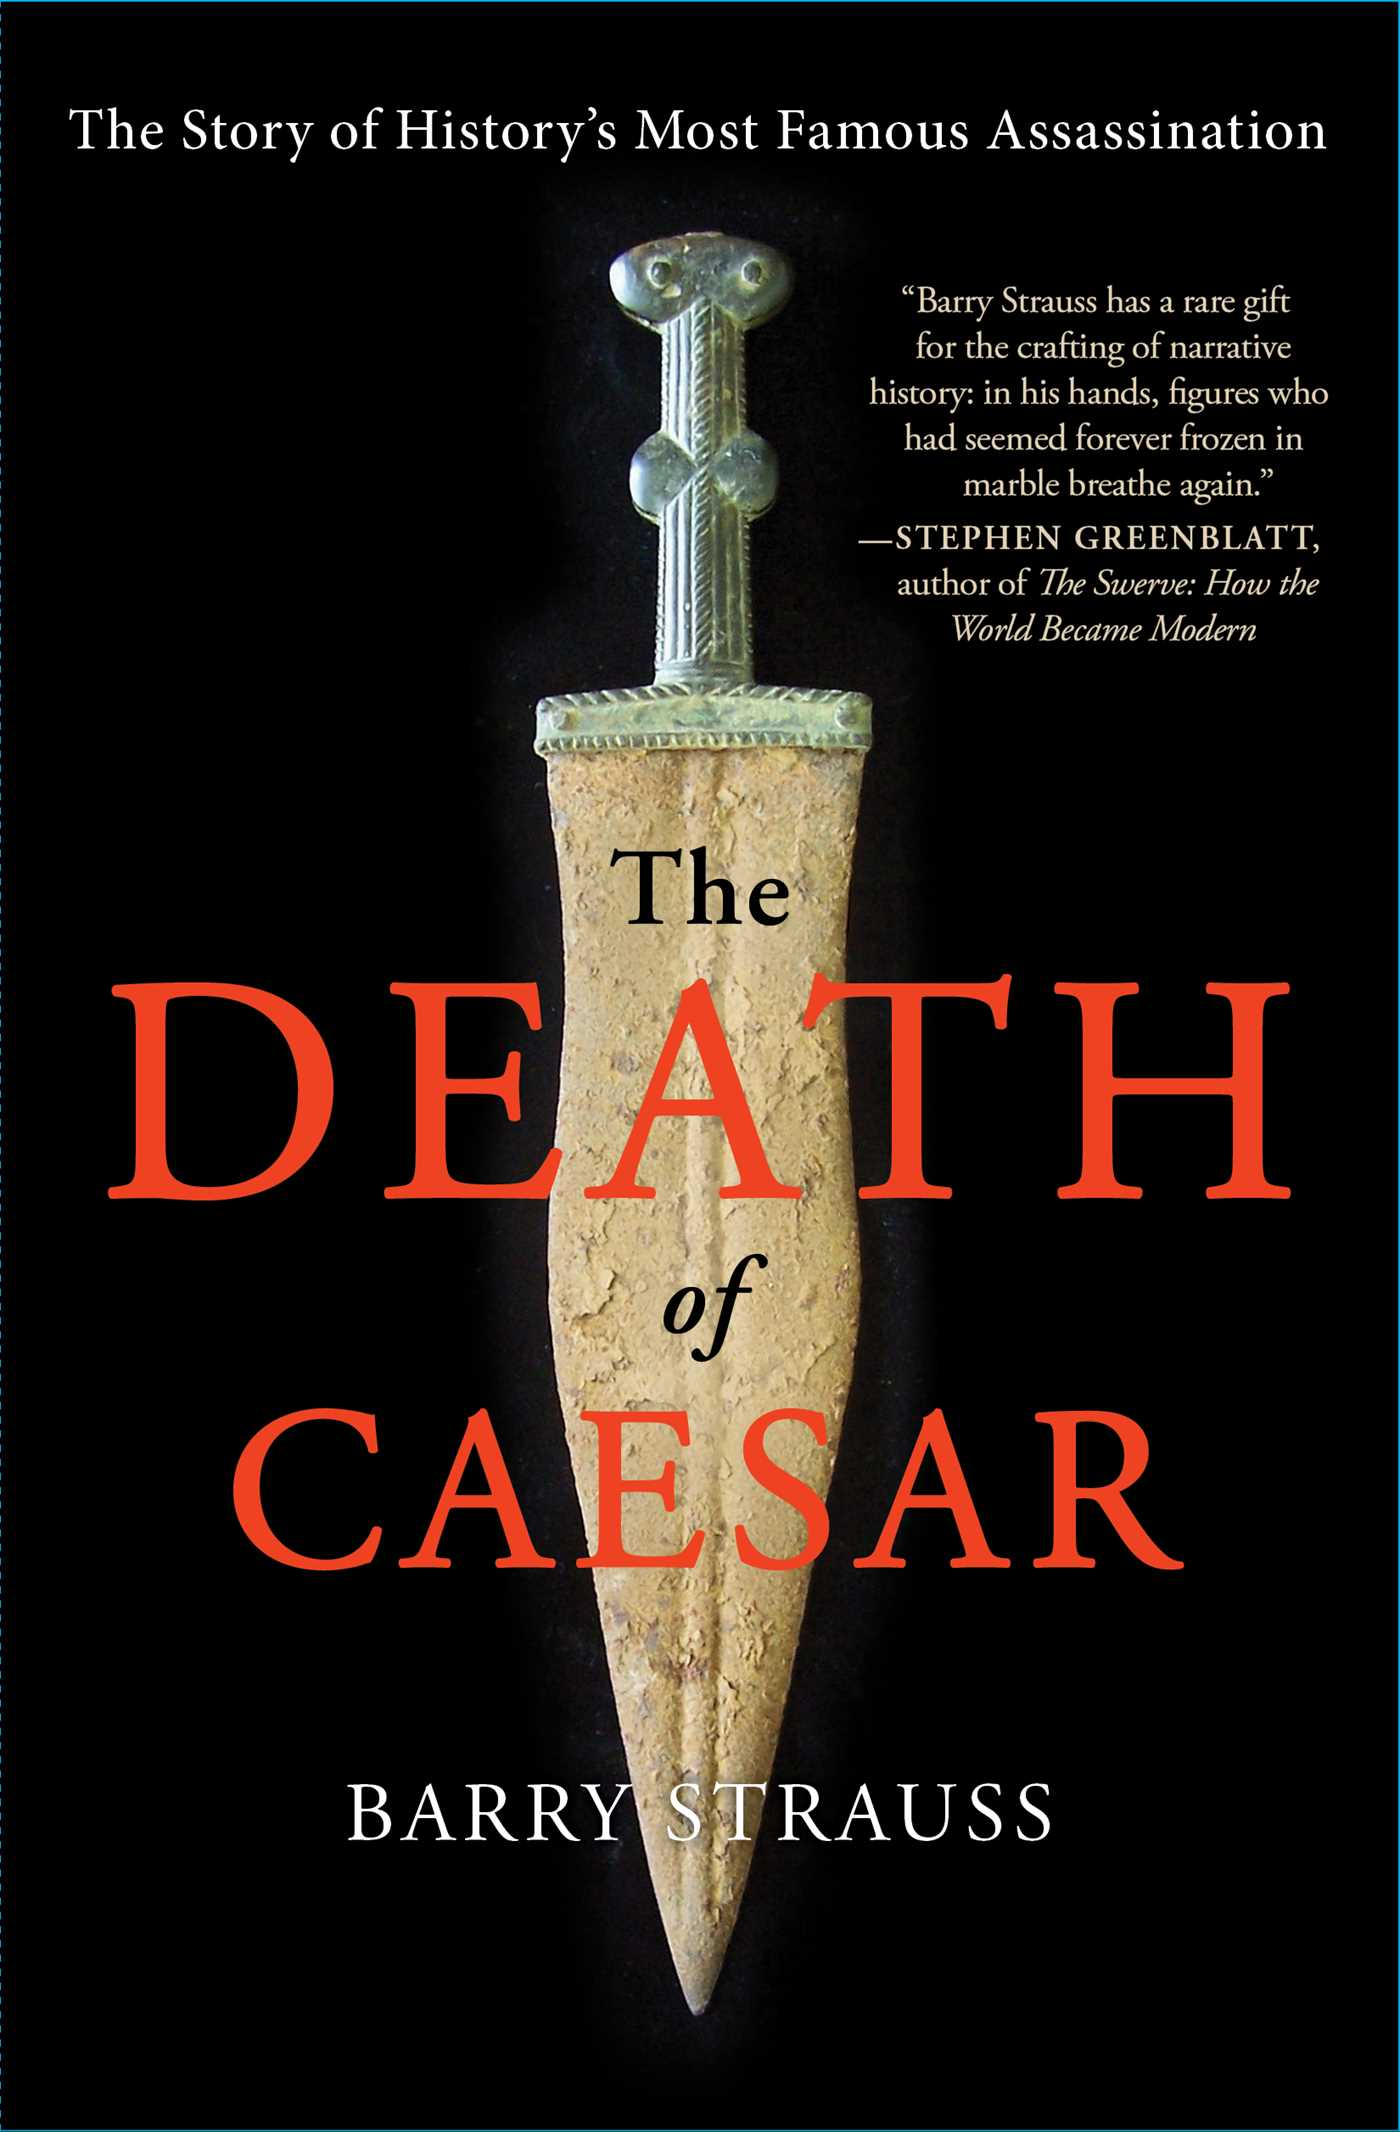 The death of caesar 9781451668810 hr